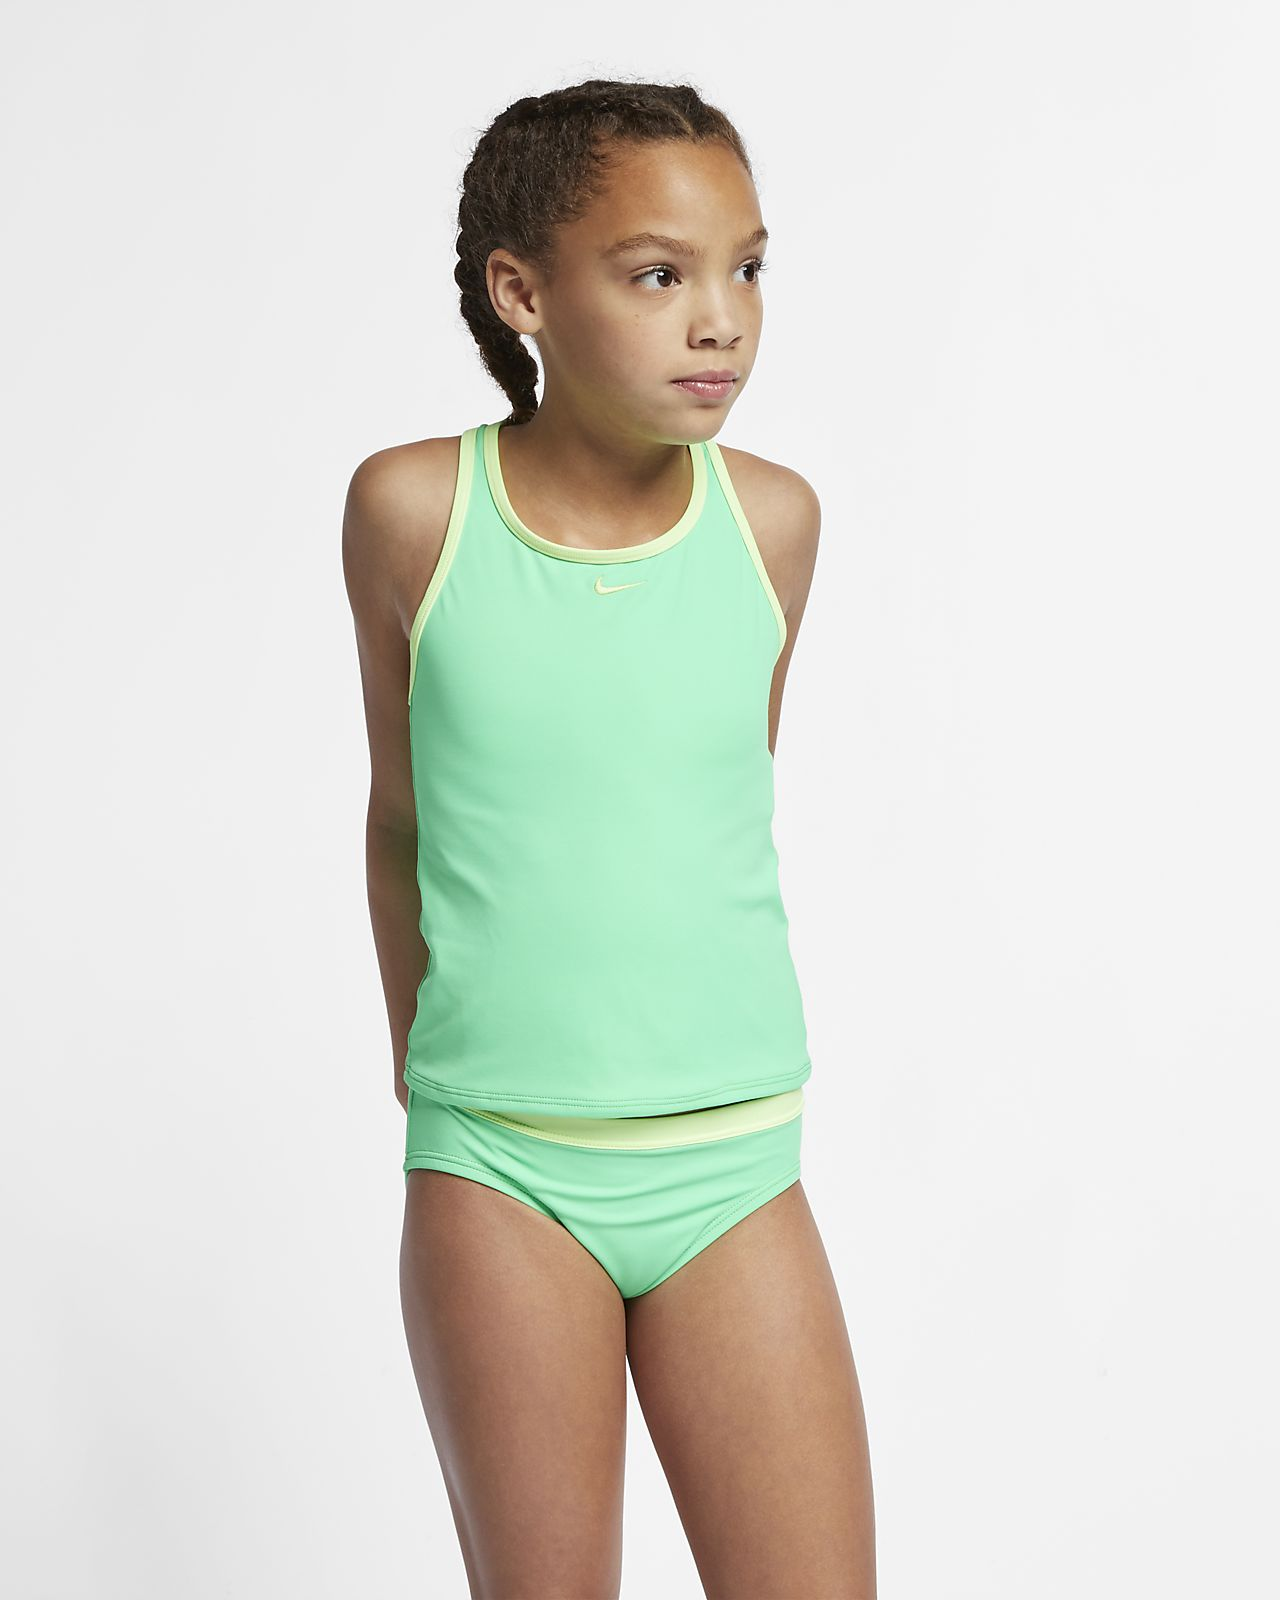 7d787654ab6f9 ... Nike Core Solid Racerback Tankini Big Kids  (Girls ) Two-Piece Swimsuit